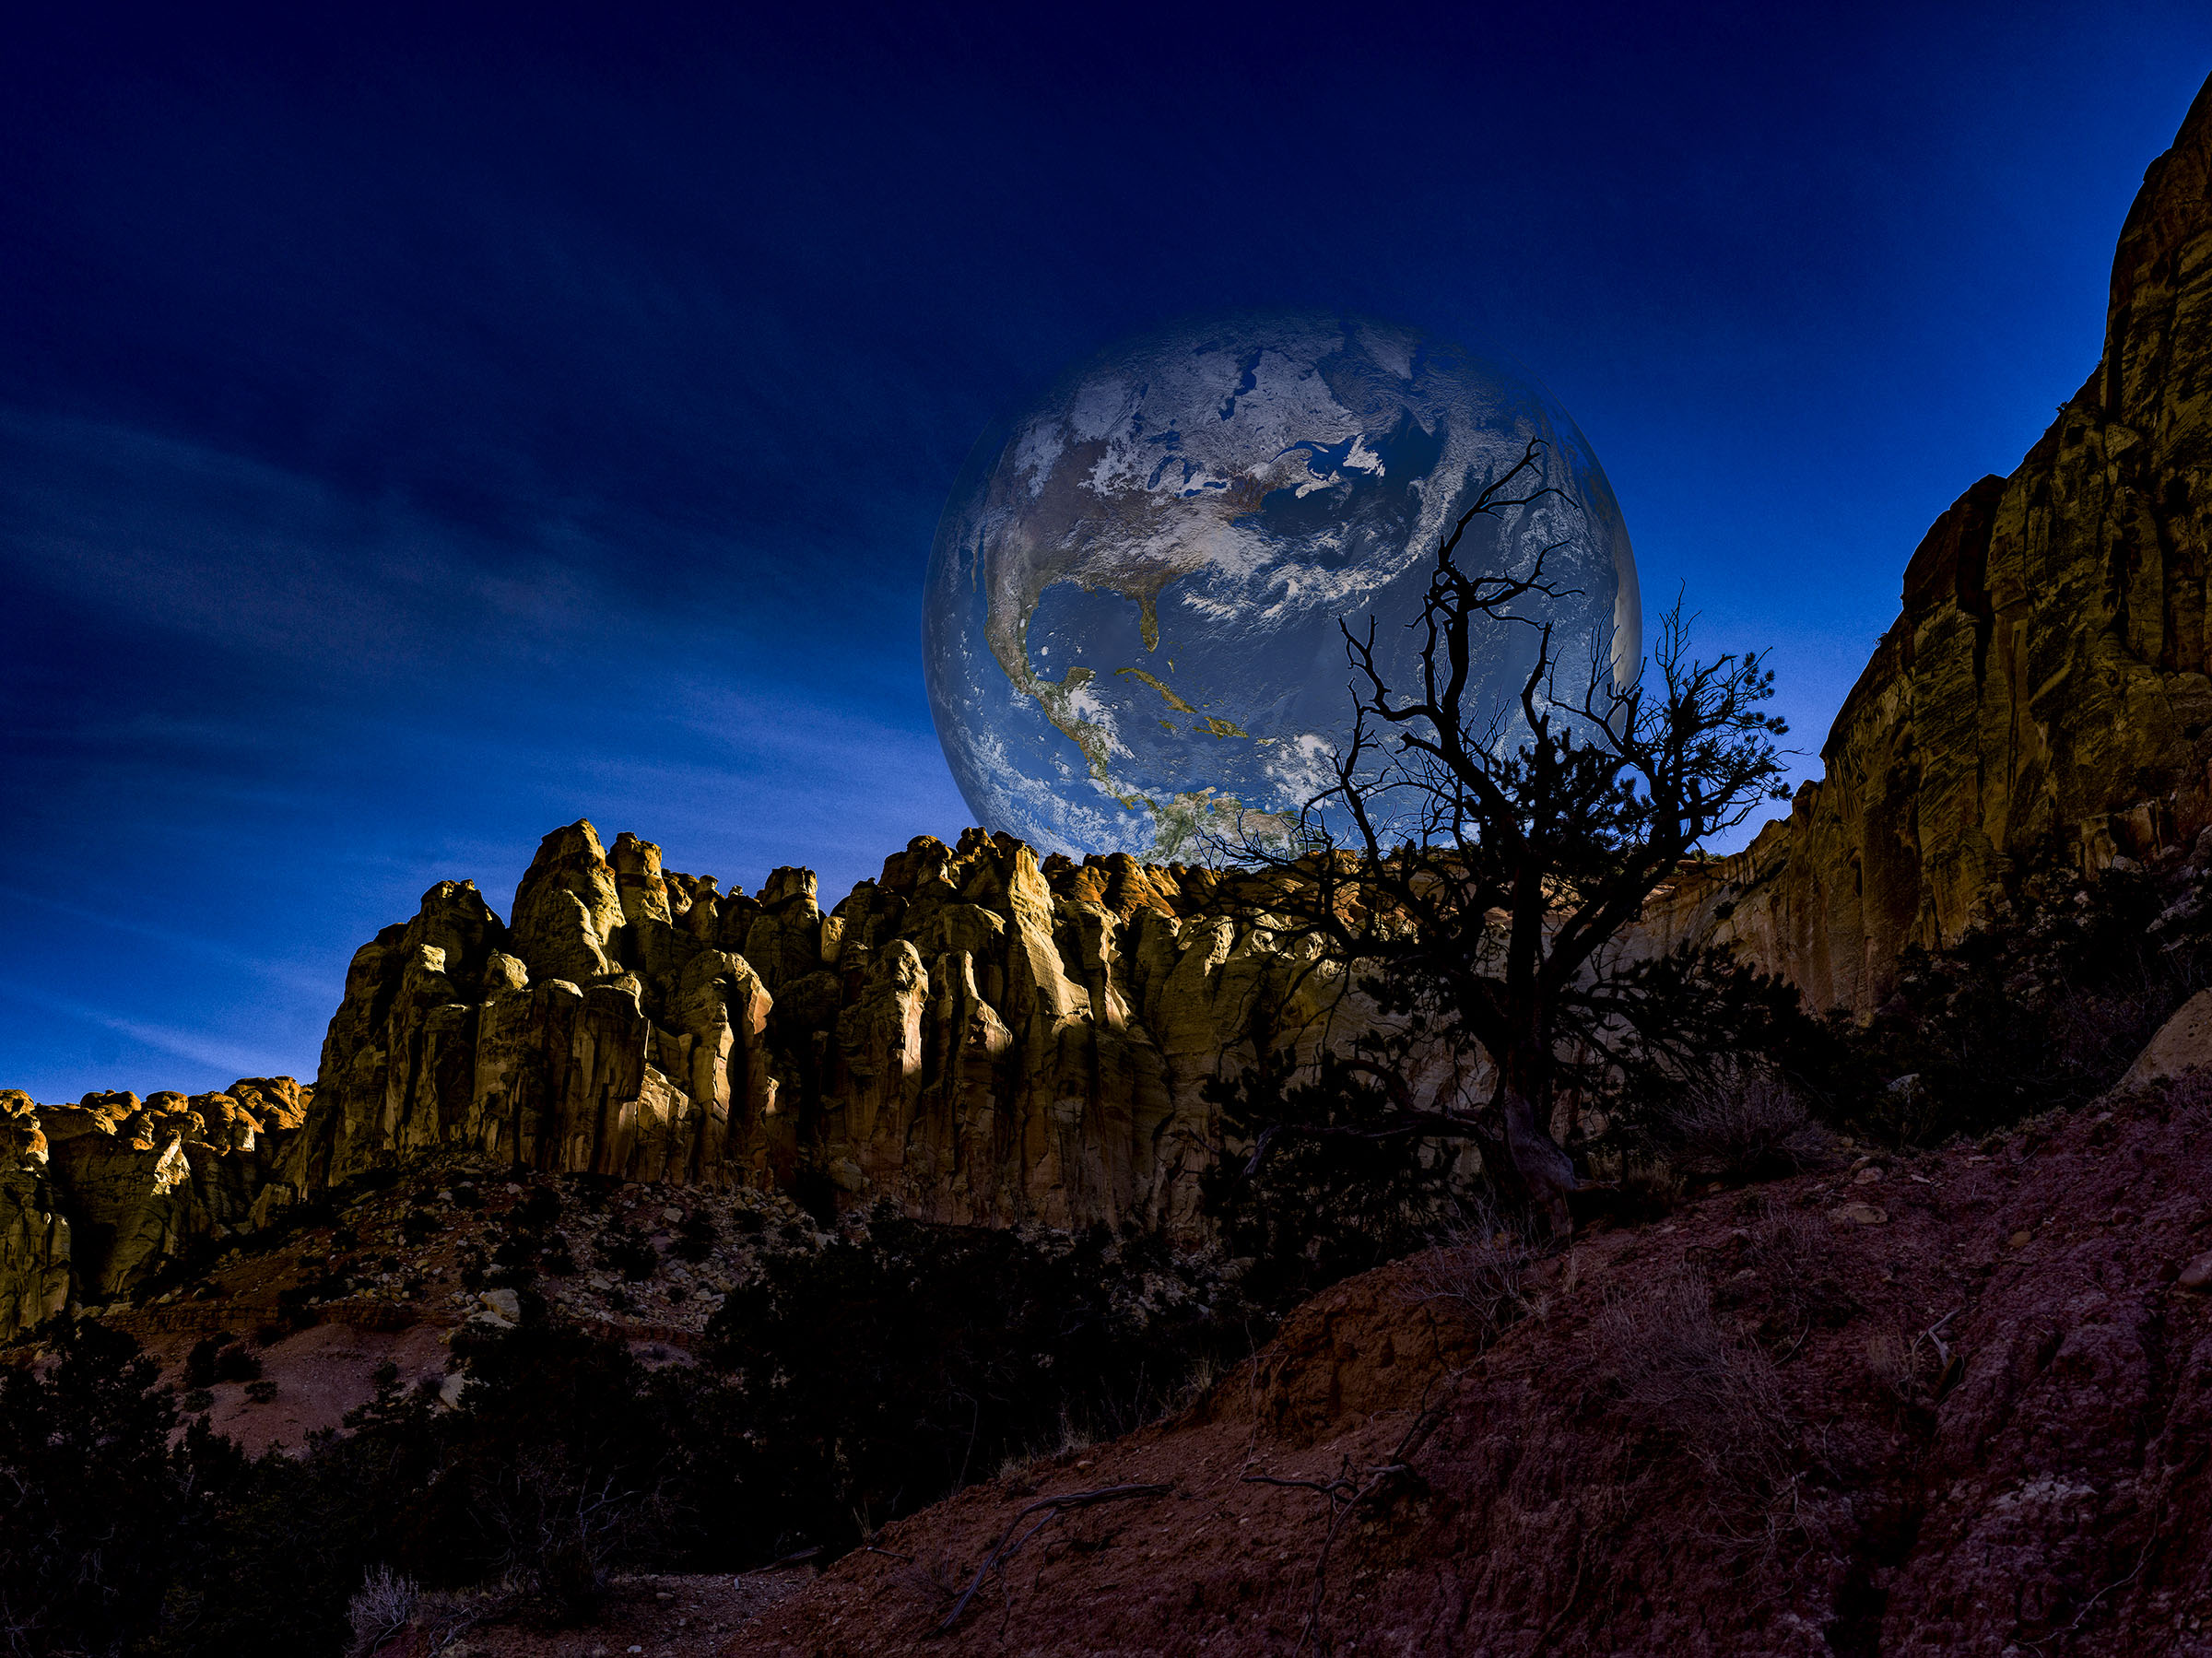 SunSet Earth web Escalante Staircase Utah Trump NYC LA Las Vegas Desert Southwest landscape Burr Trail Best Fine Art Portrait magazine Photography Wick Beavers NY Photographer